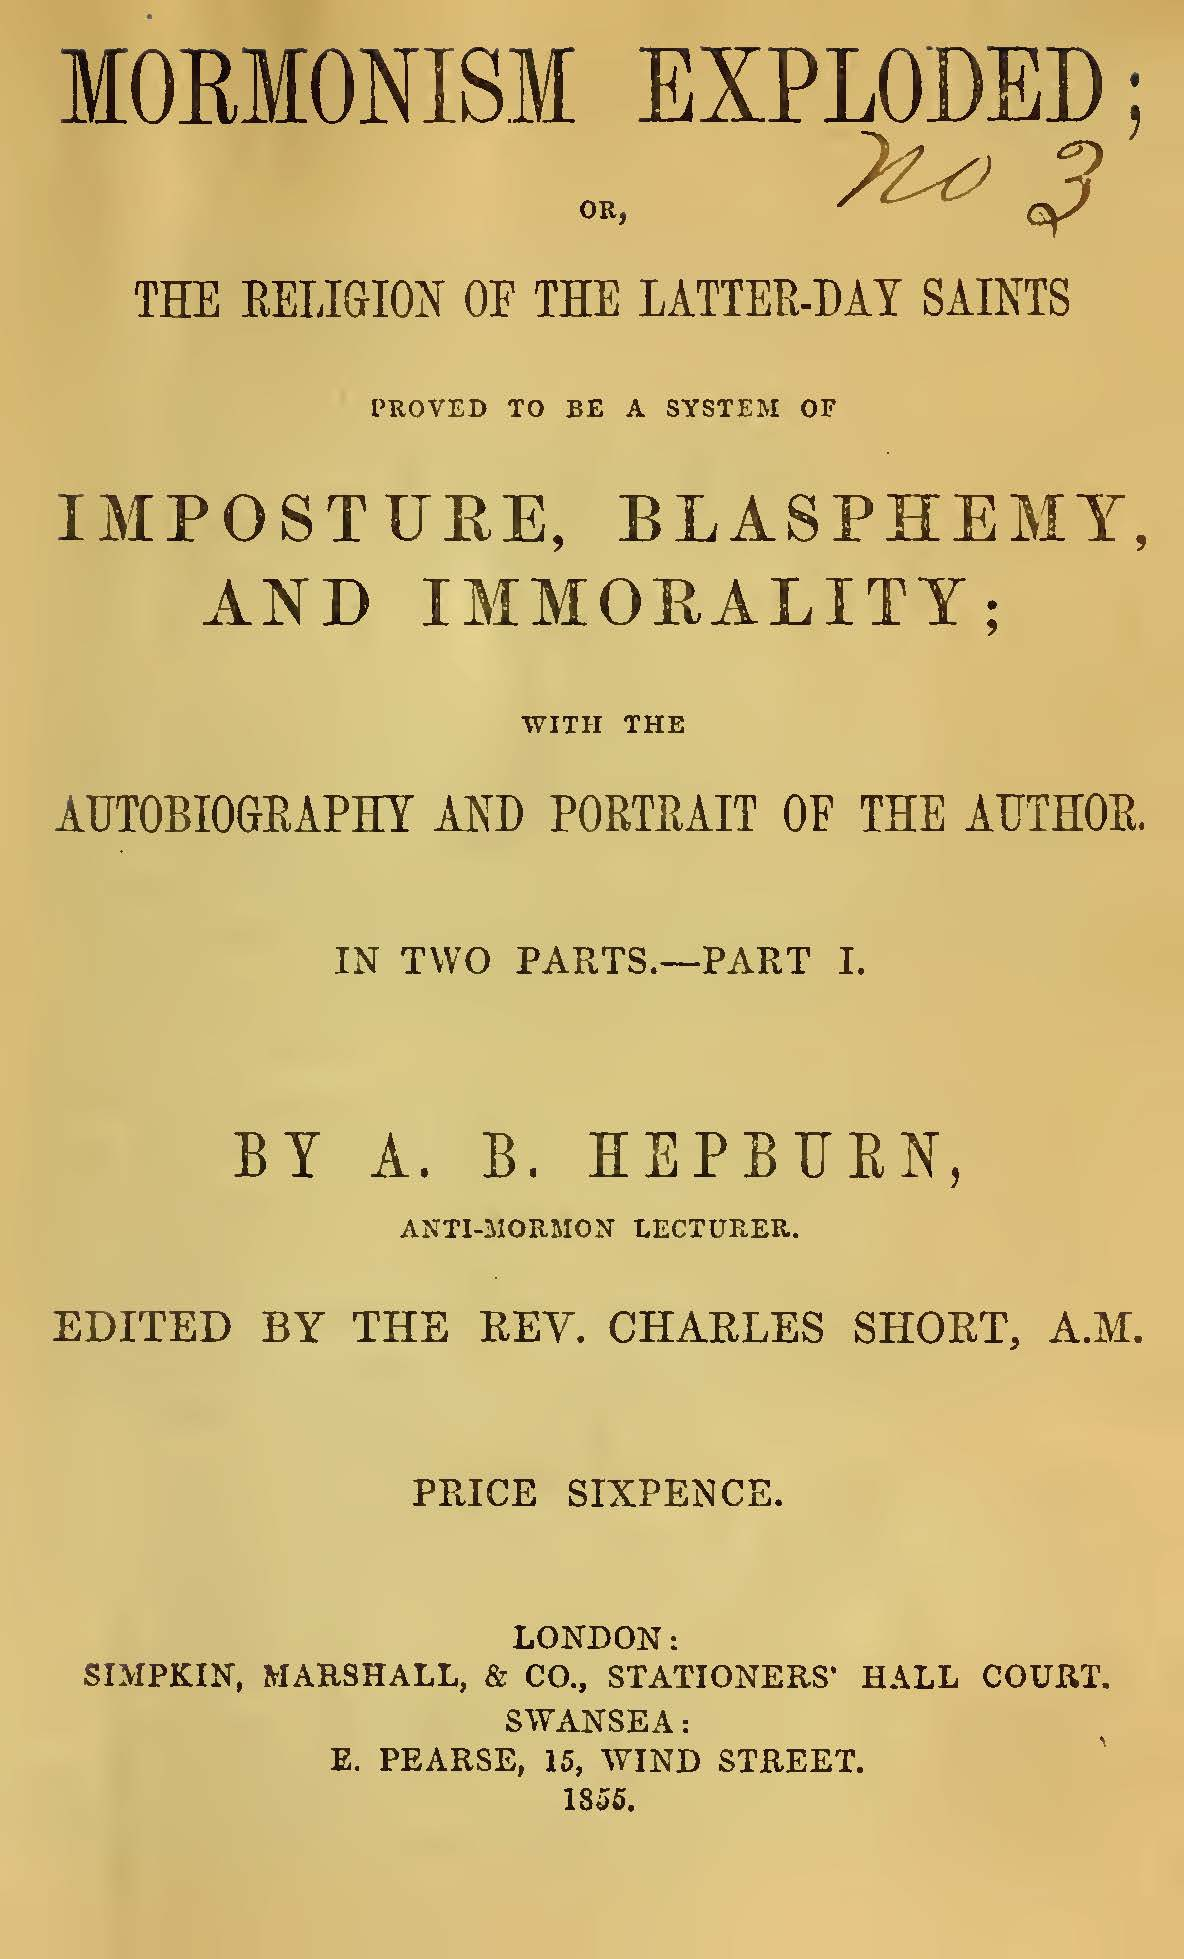 Hepburn, Andrew Dousa, Mormonism Exploded Title Page.jpg